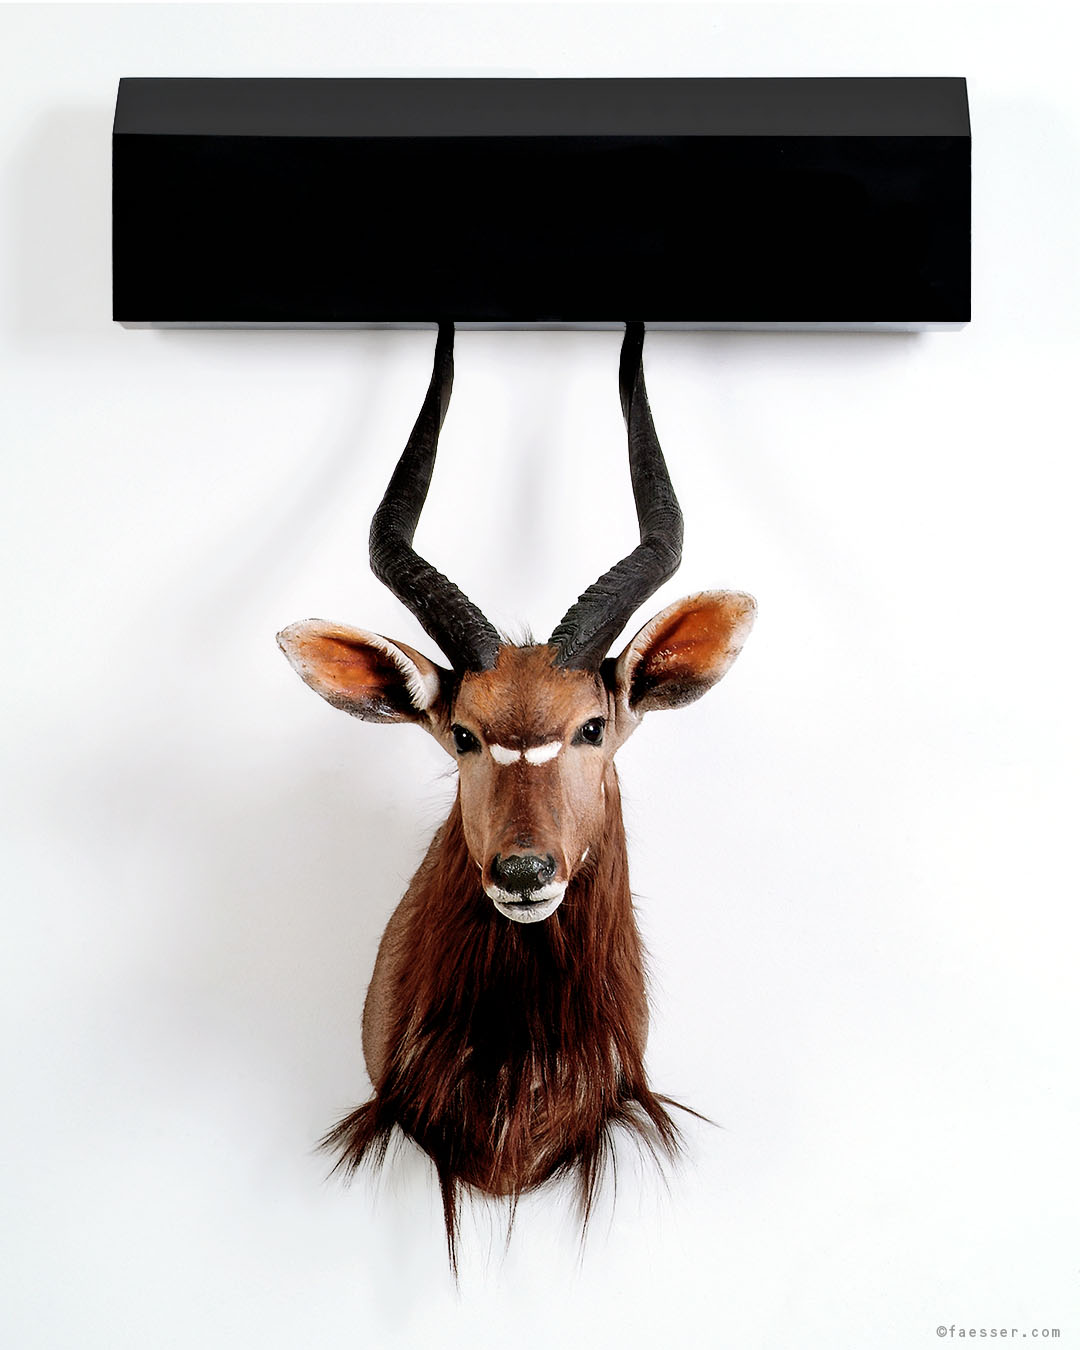 Stuffed Antelope trophy with a skewered black house on the antlers, Roland Faesser 2005